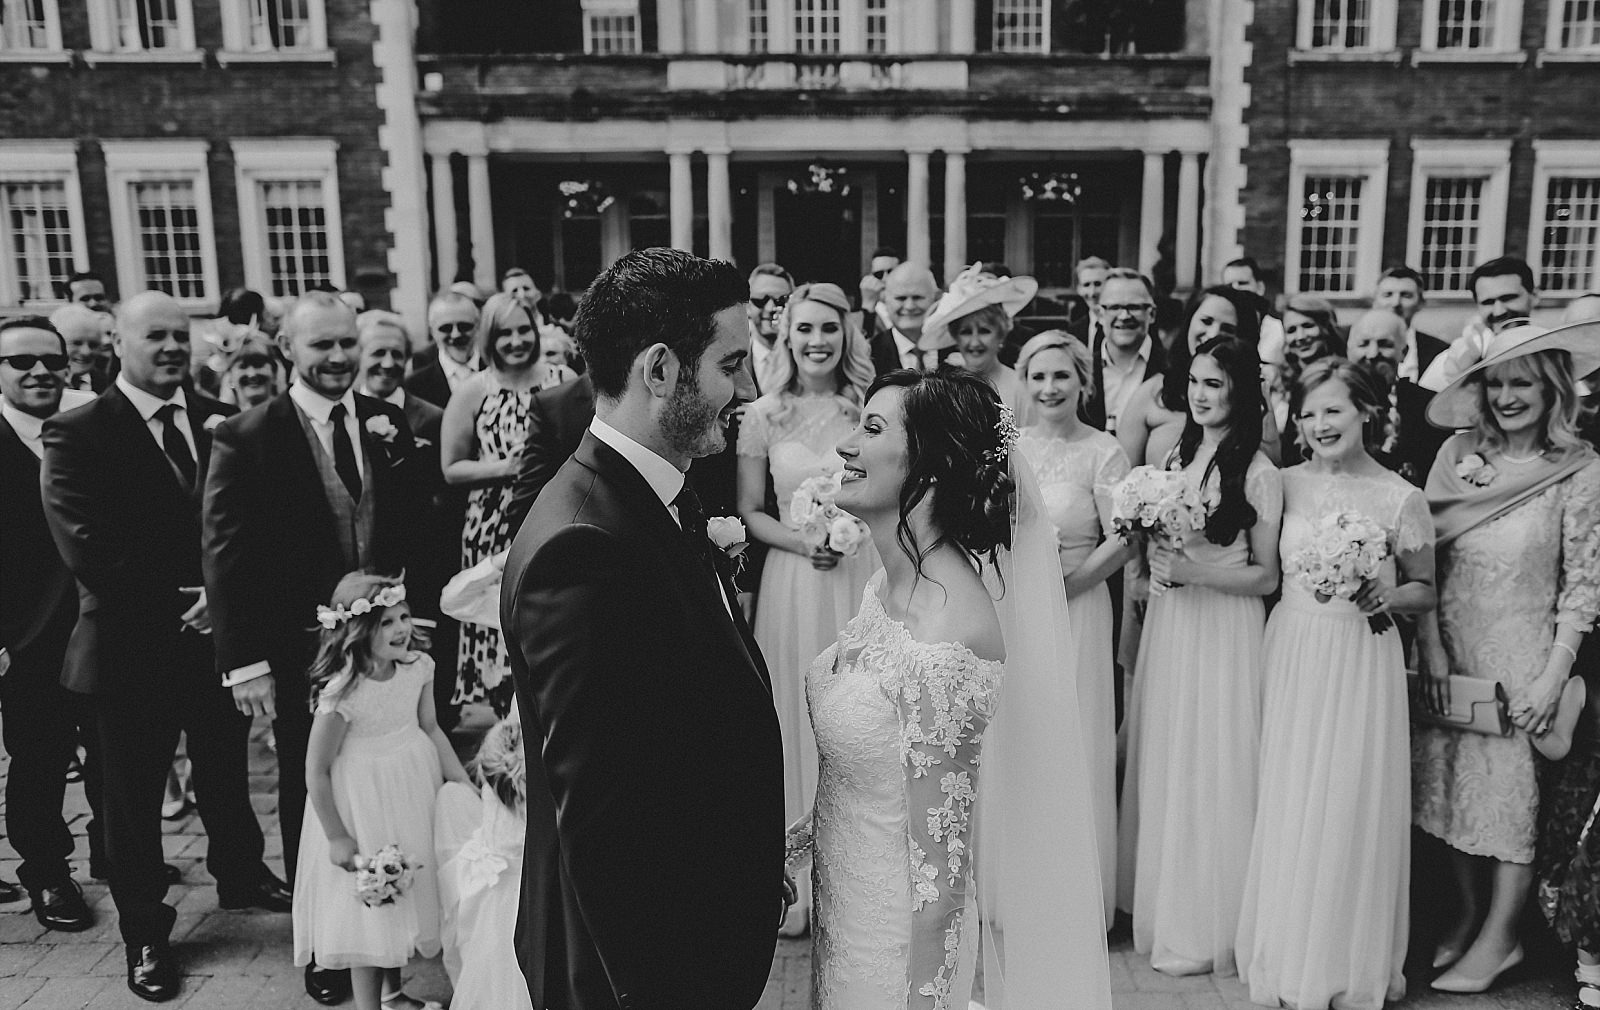 eaves hall wedding photographer captures group shot